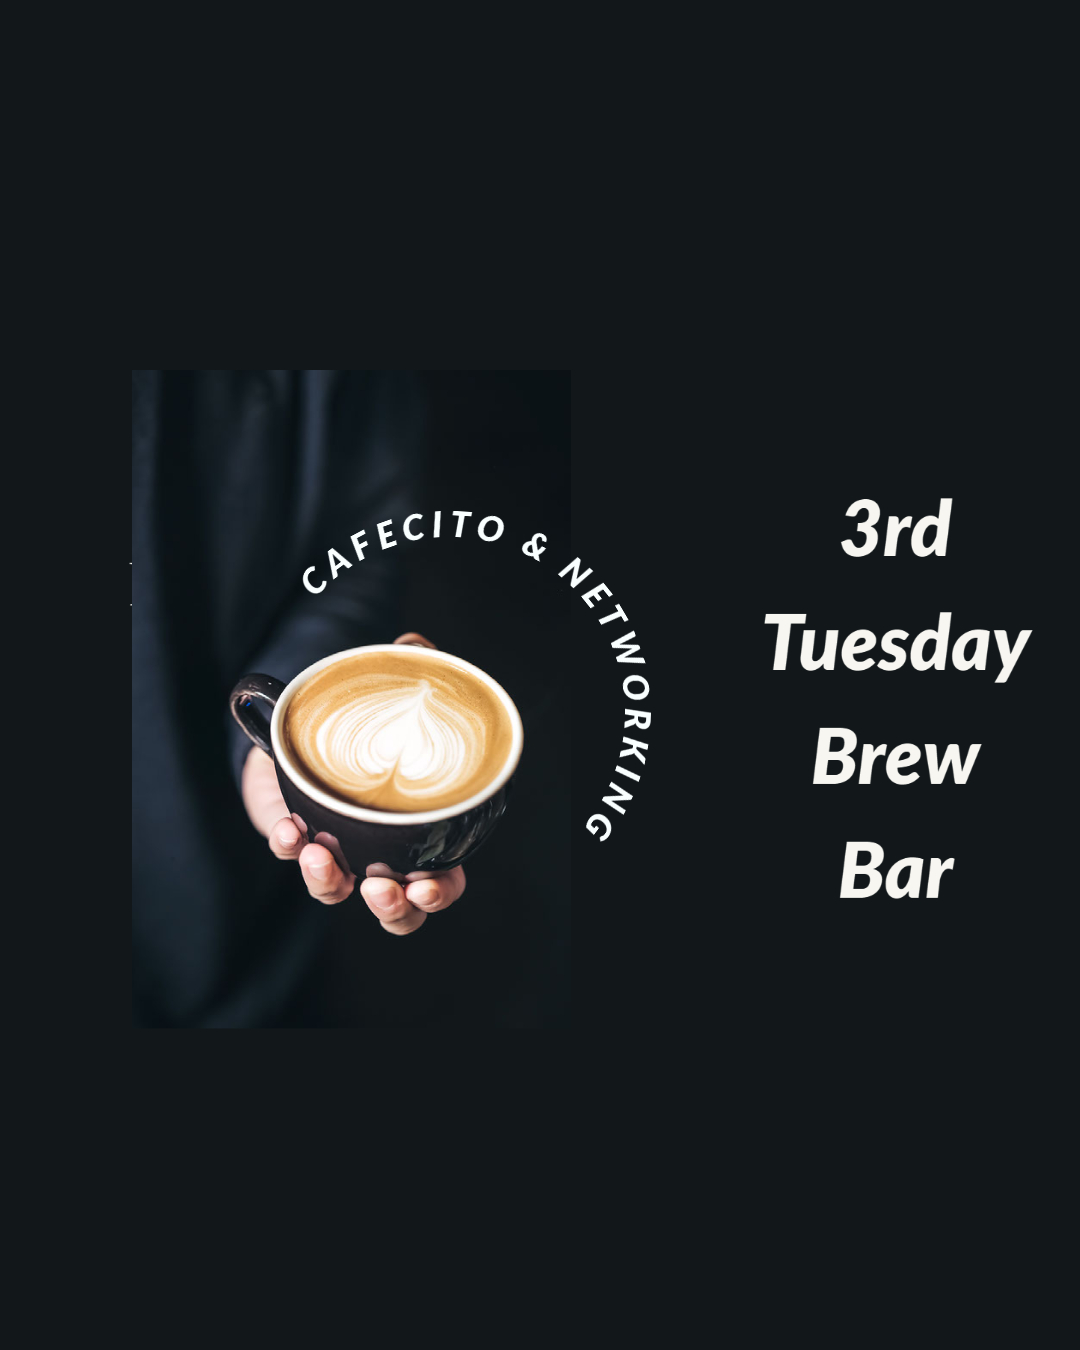 Cafecito & Networking - 3rd Tuesday of the Month @Brew Bar Chula Vista